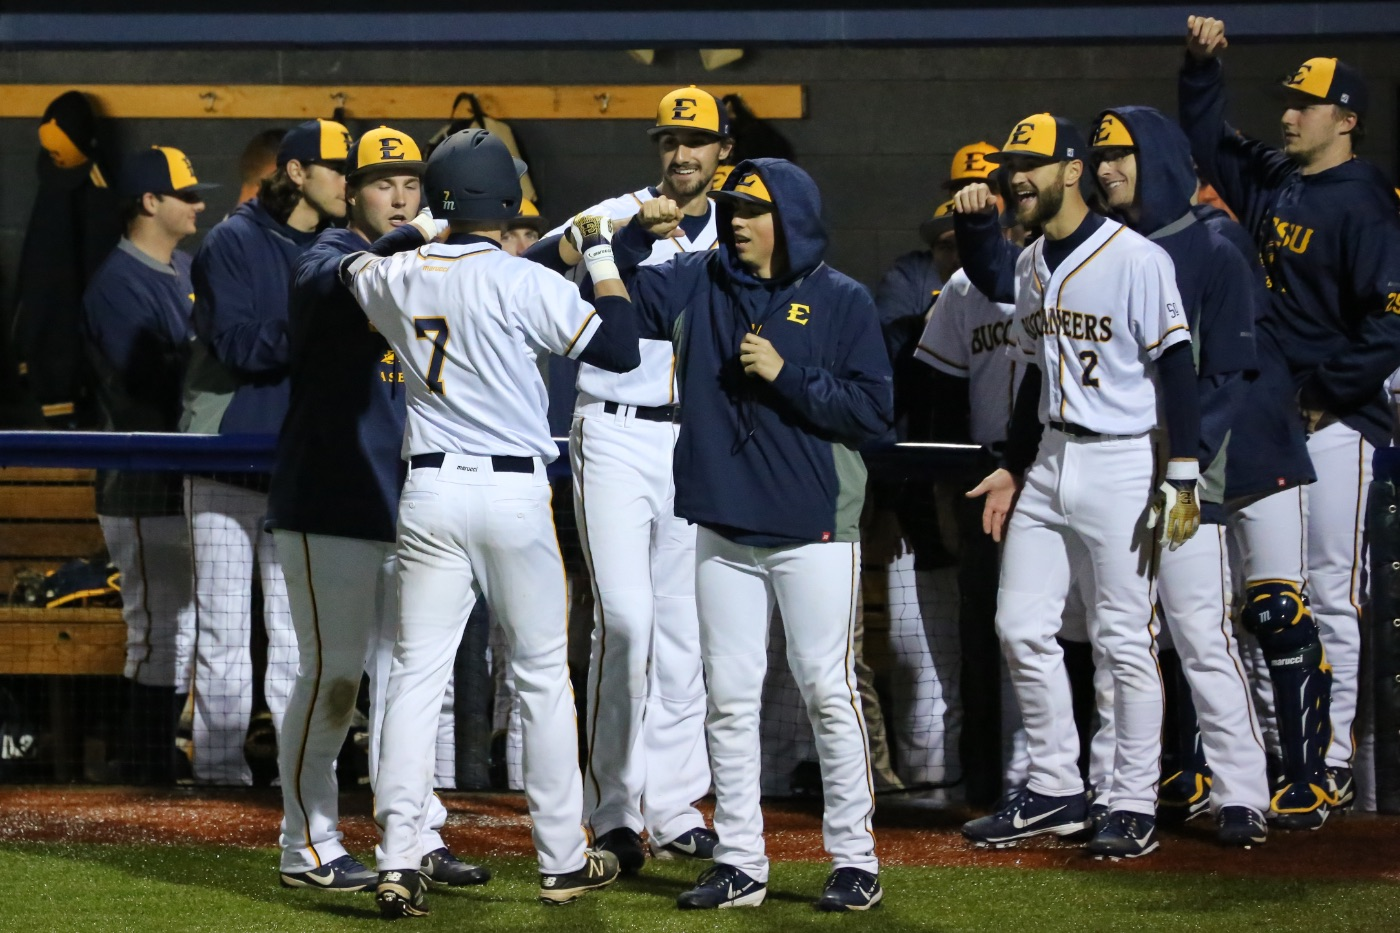 Dramatic ninth inning gives ETSU road win over FGCU